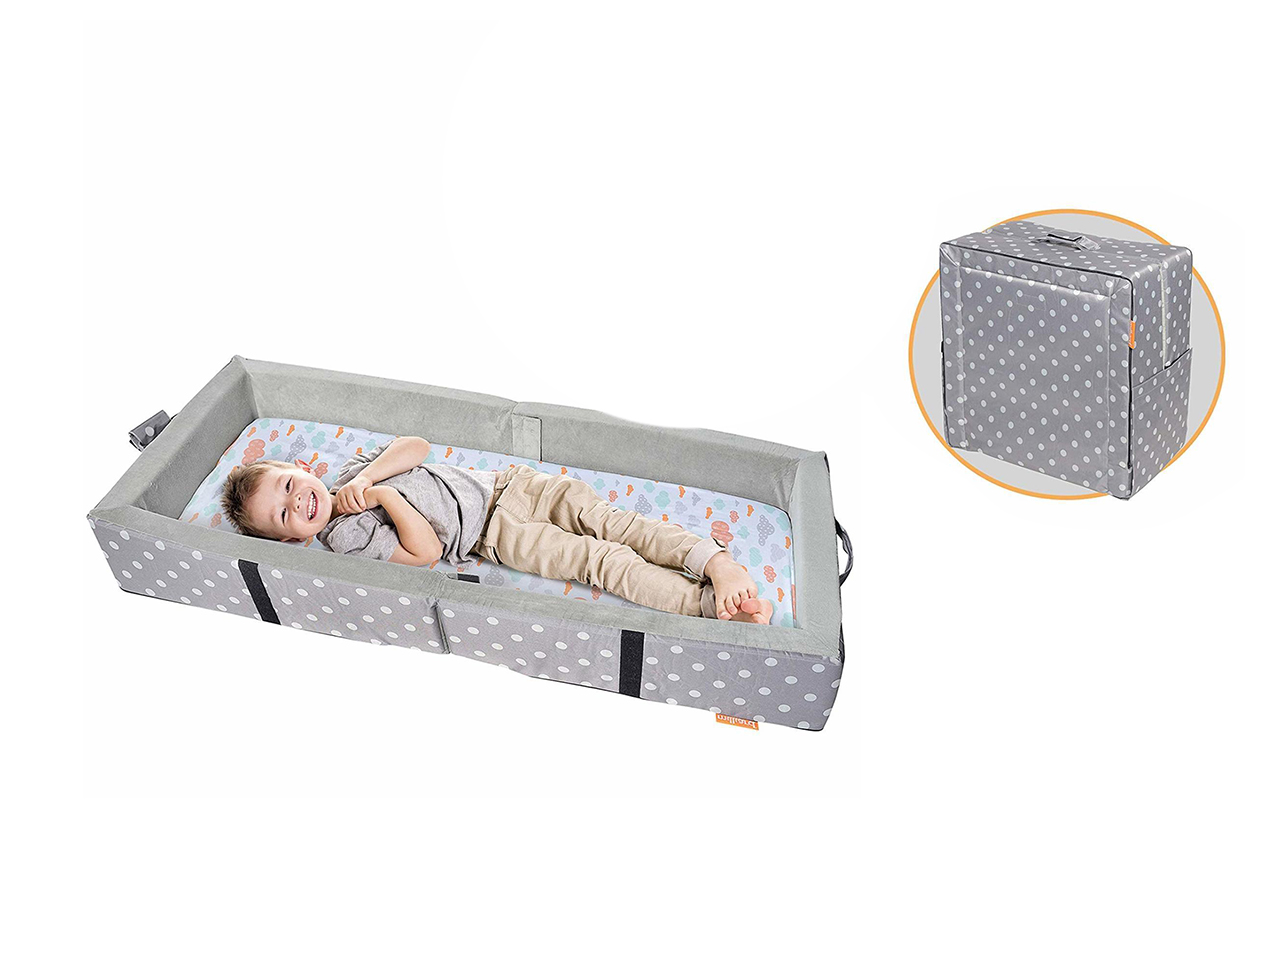 6 best toddler travel beds to tote on